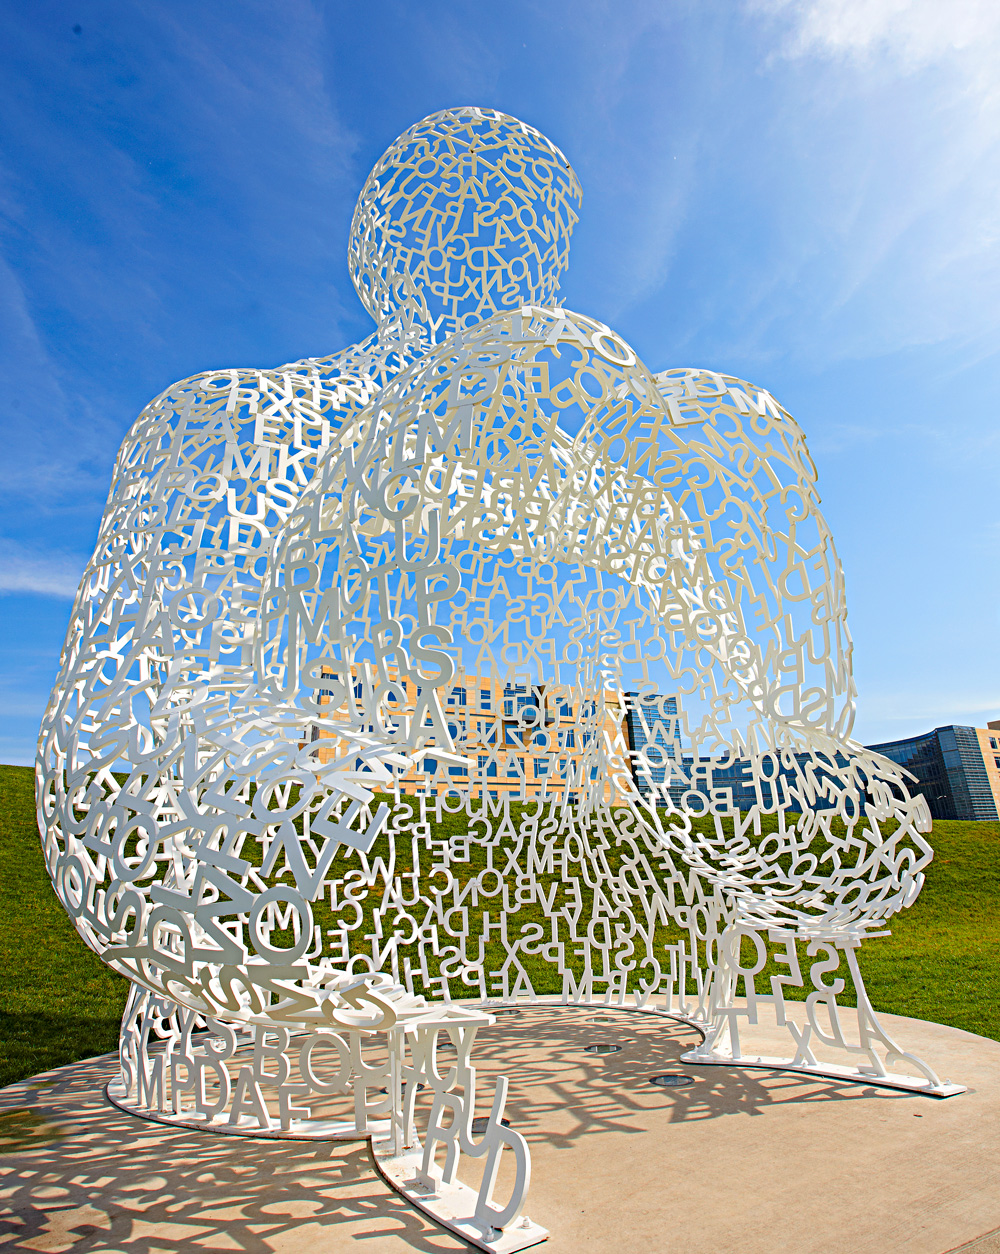 Des Moines: Des Moines Art Center and John and Mary Pappajohn Sculpture Park